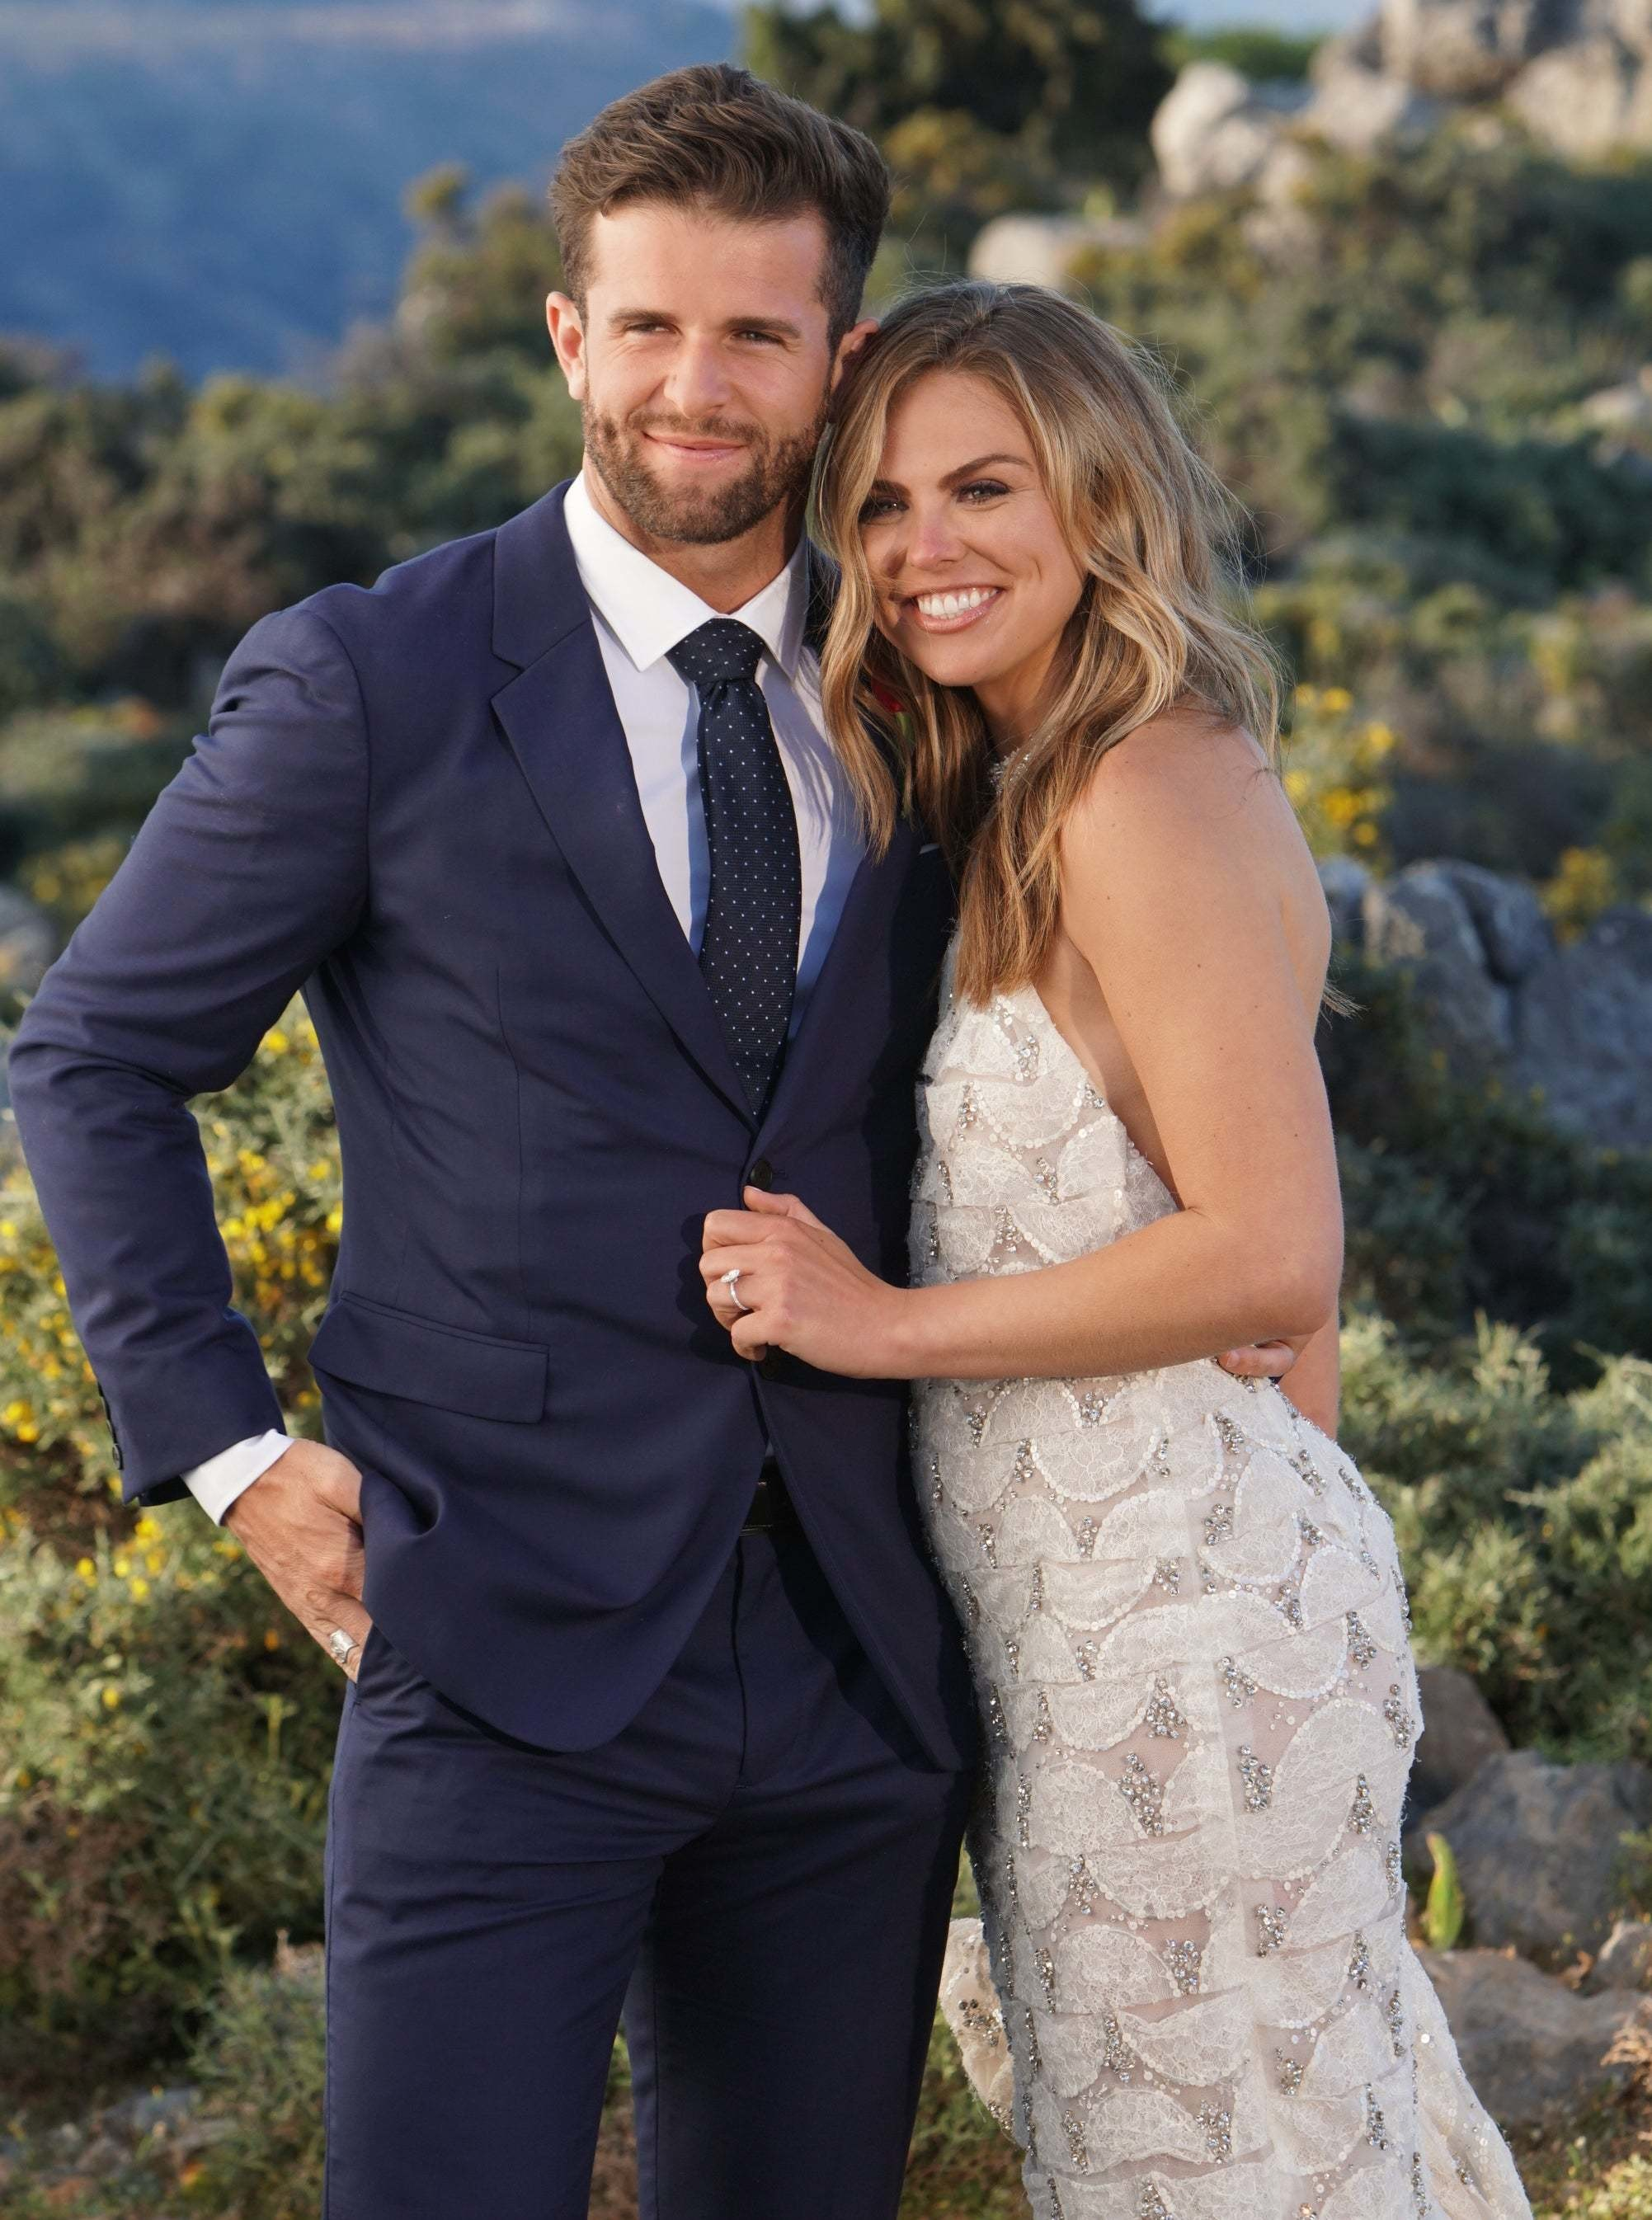 Where Are They Now The Bachelor The Bachelorette Couples Zimbio